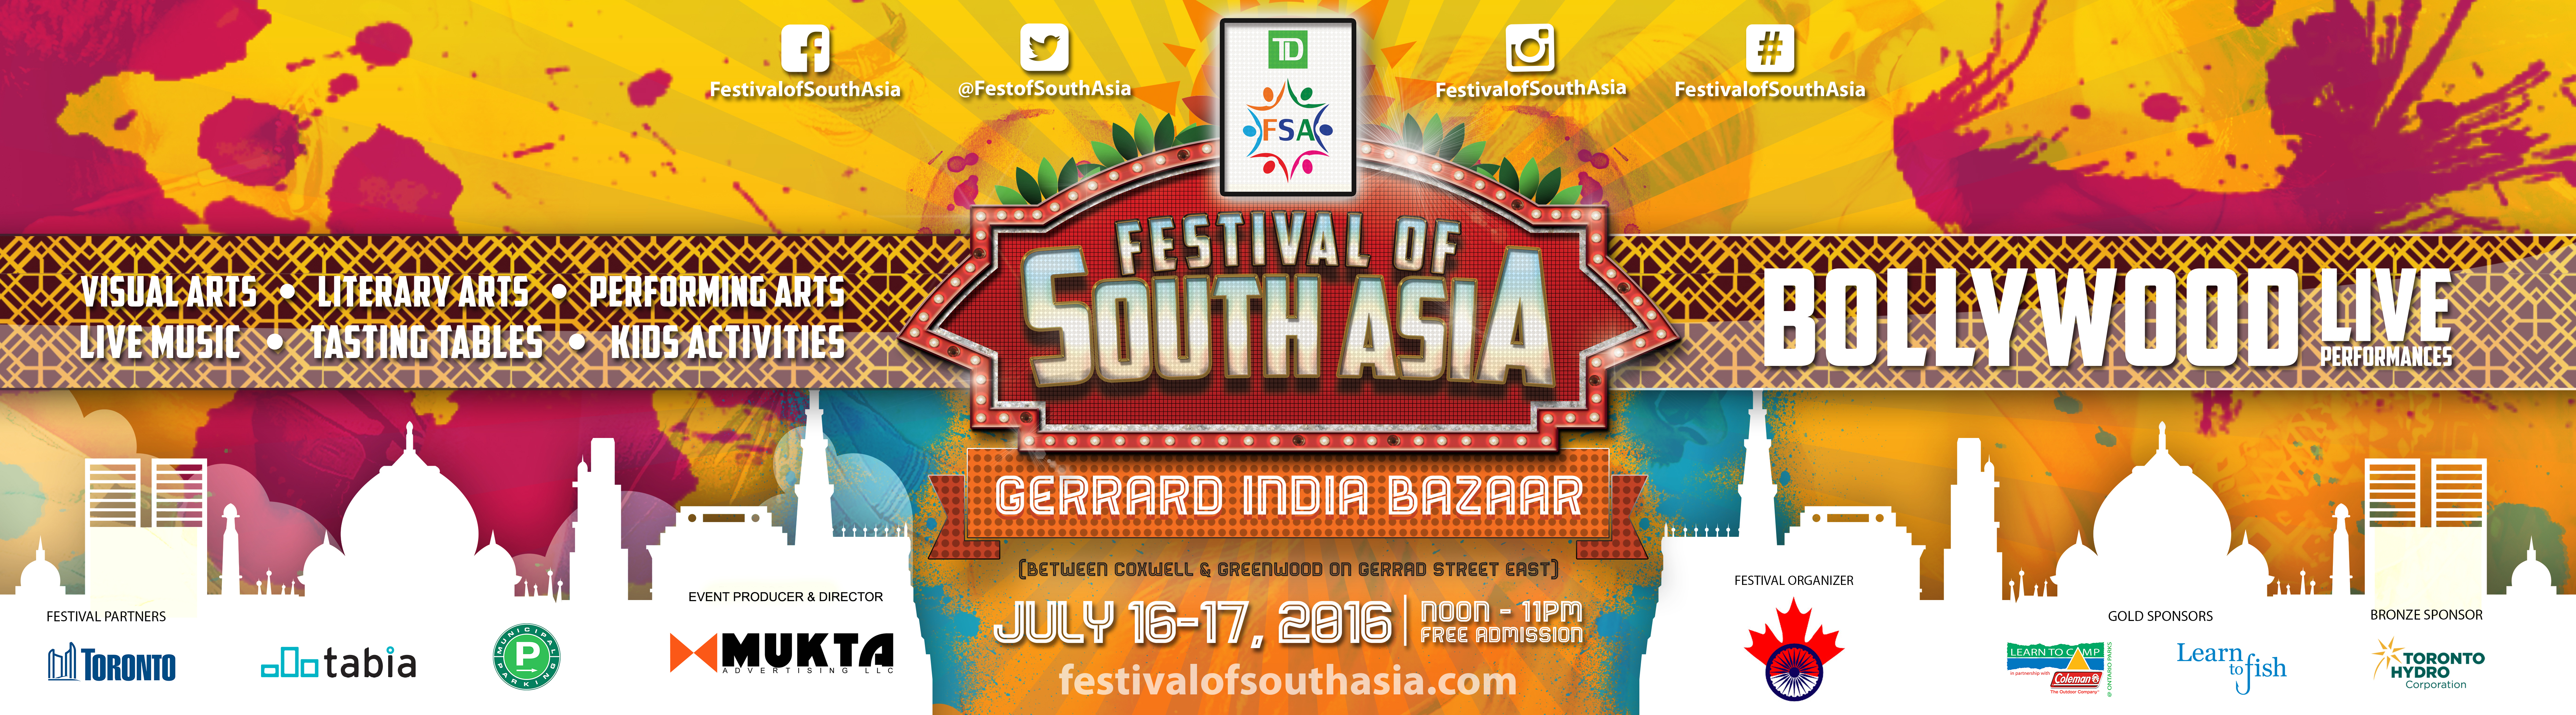 Festival-of-South-Asia-7500-x-2083